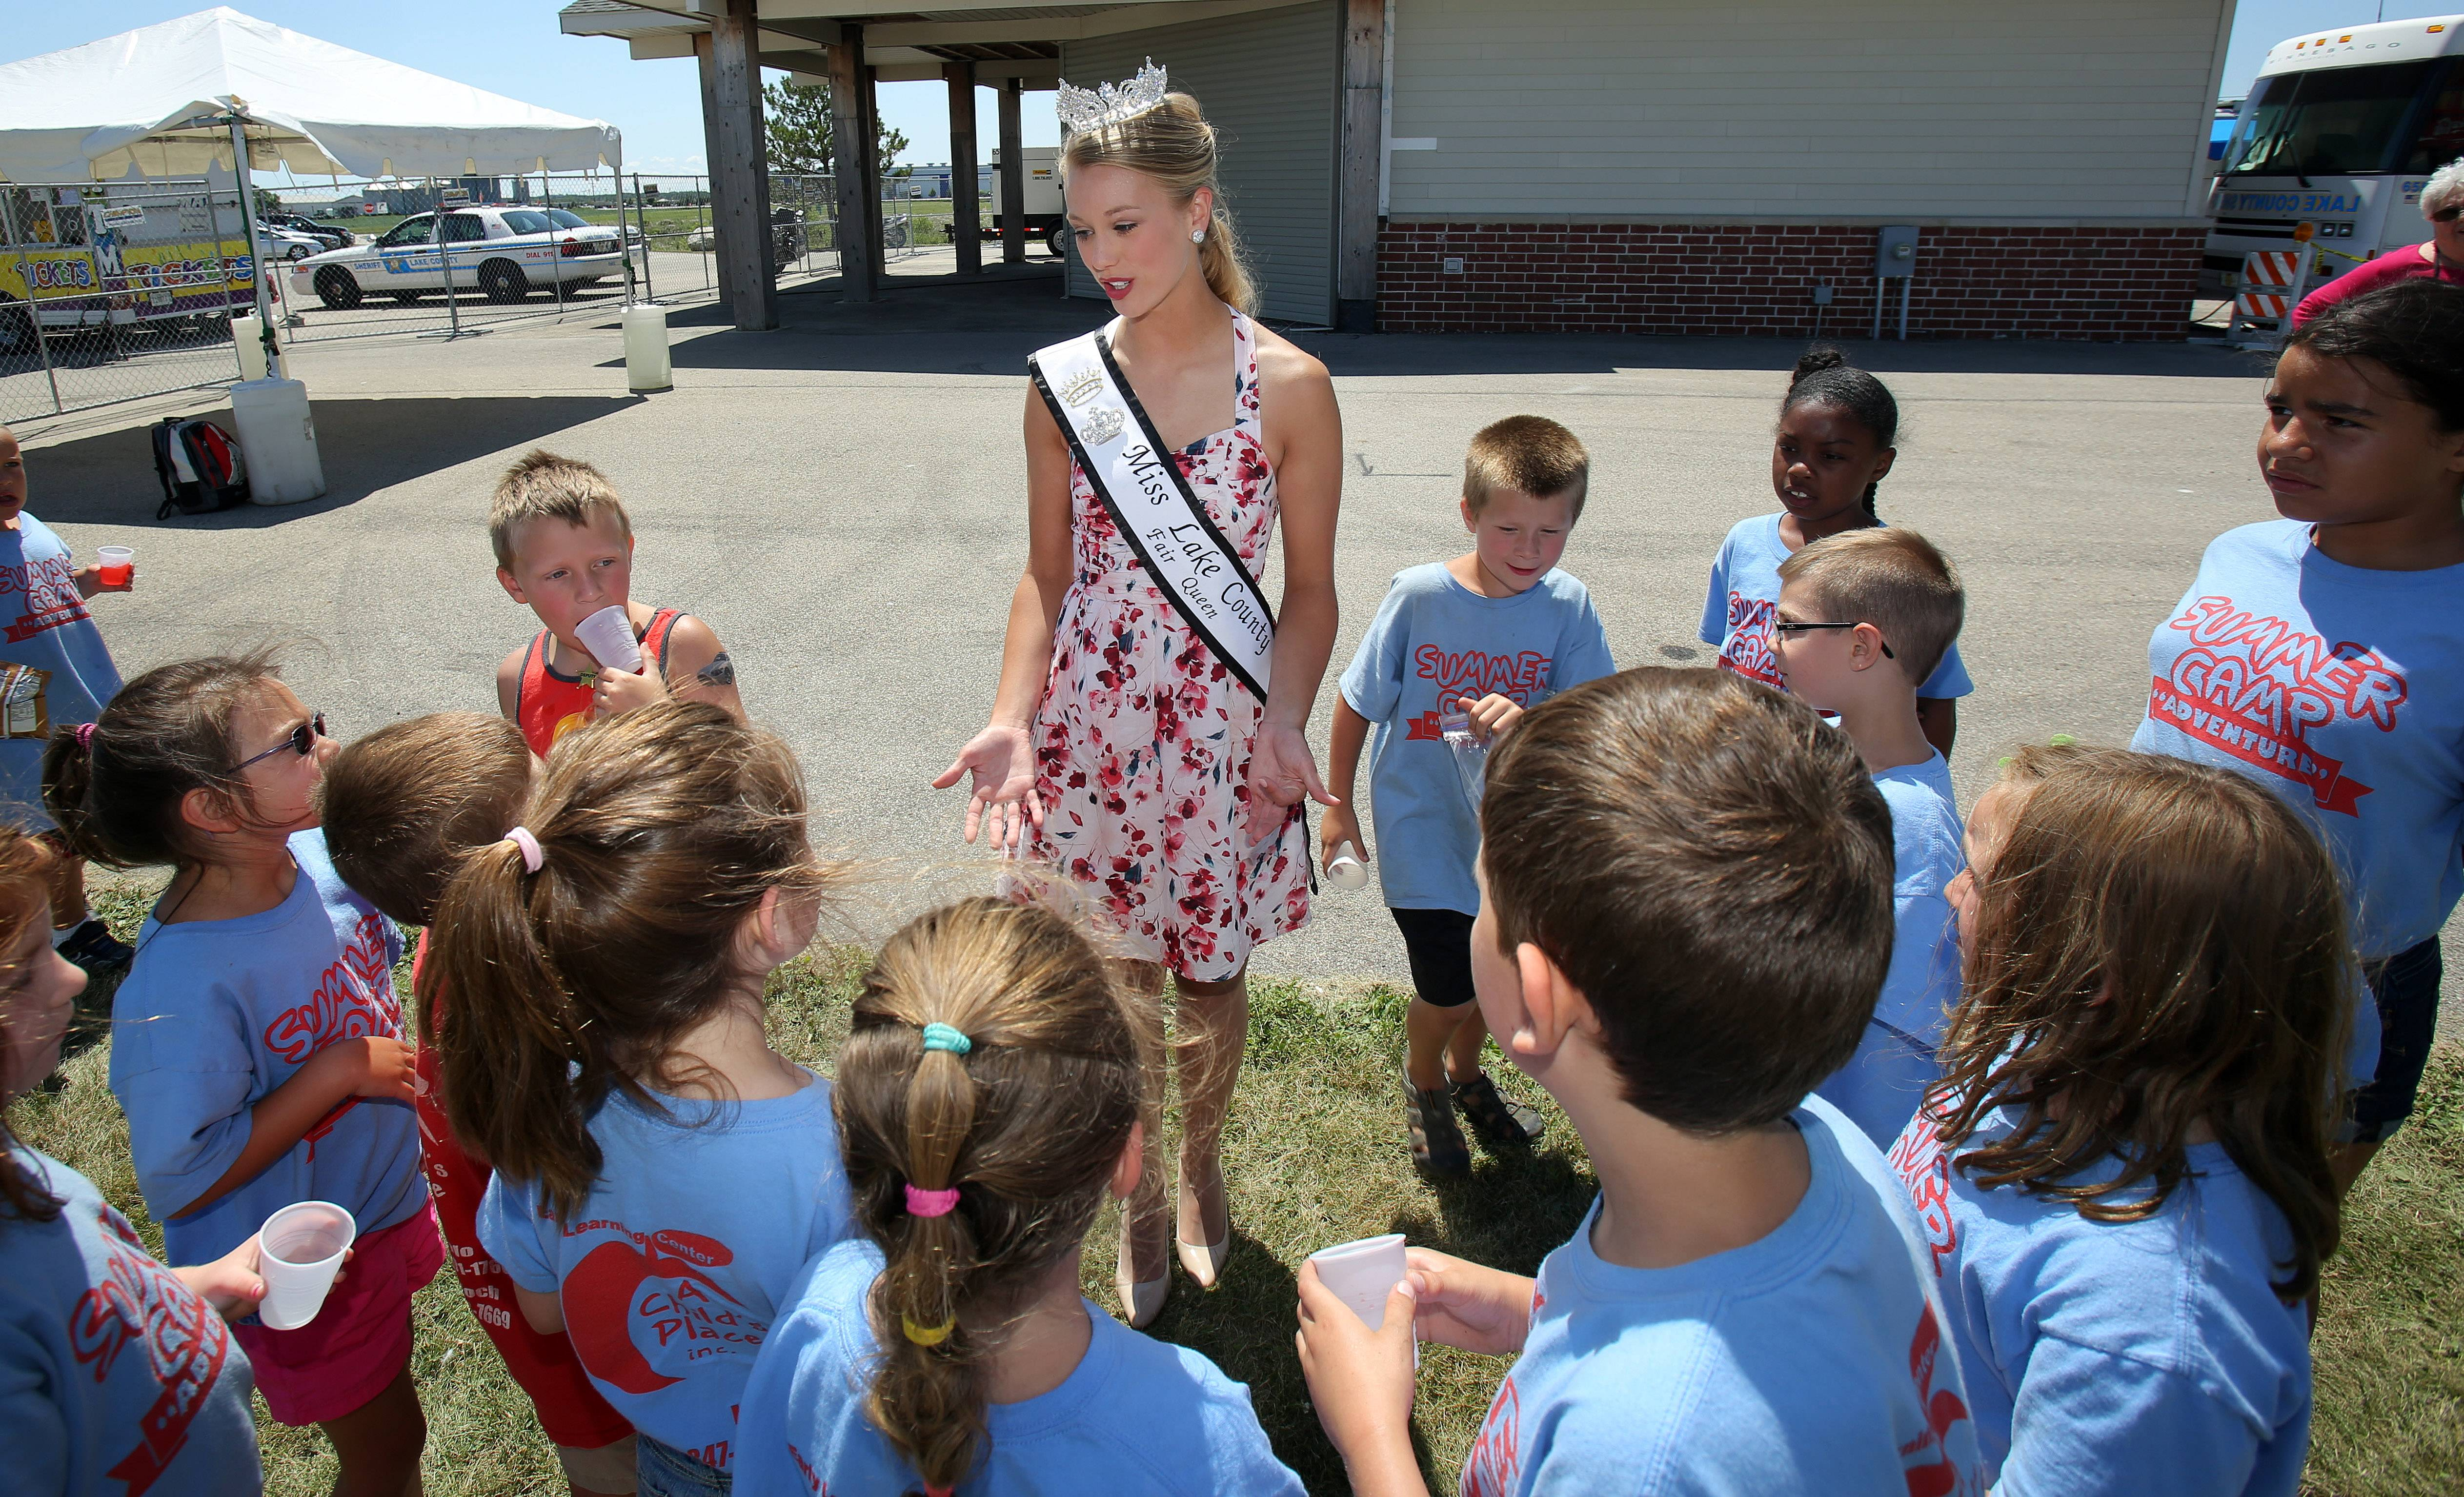 Miss Lake County Fair 2014 Julia Bauschke, 19, talks with summer camp kids from A Children's Place Thursday at the Lake County Fair in Grayslake.